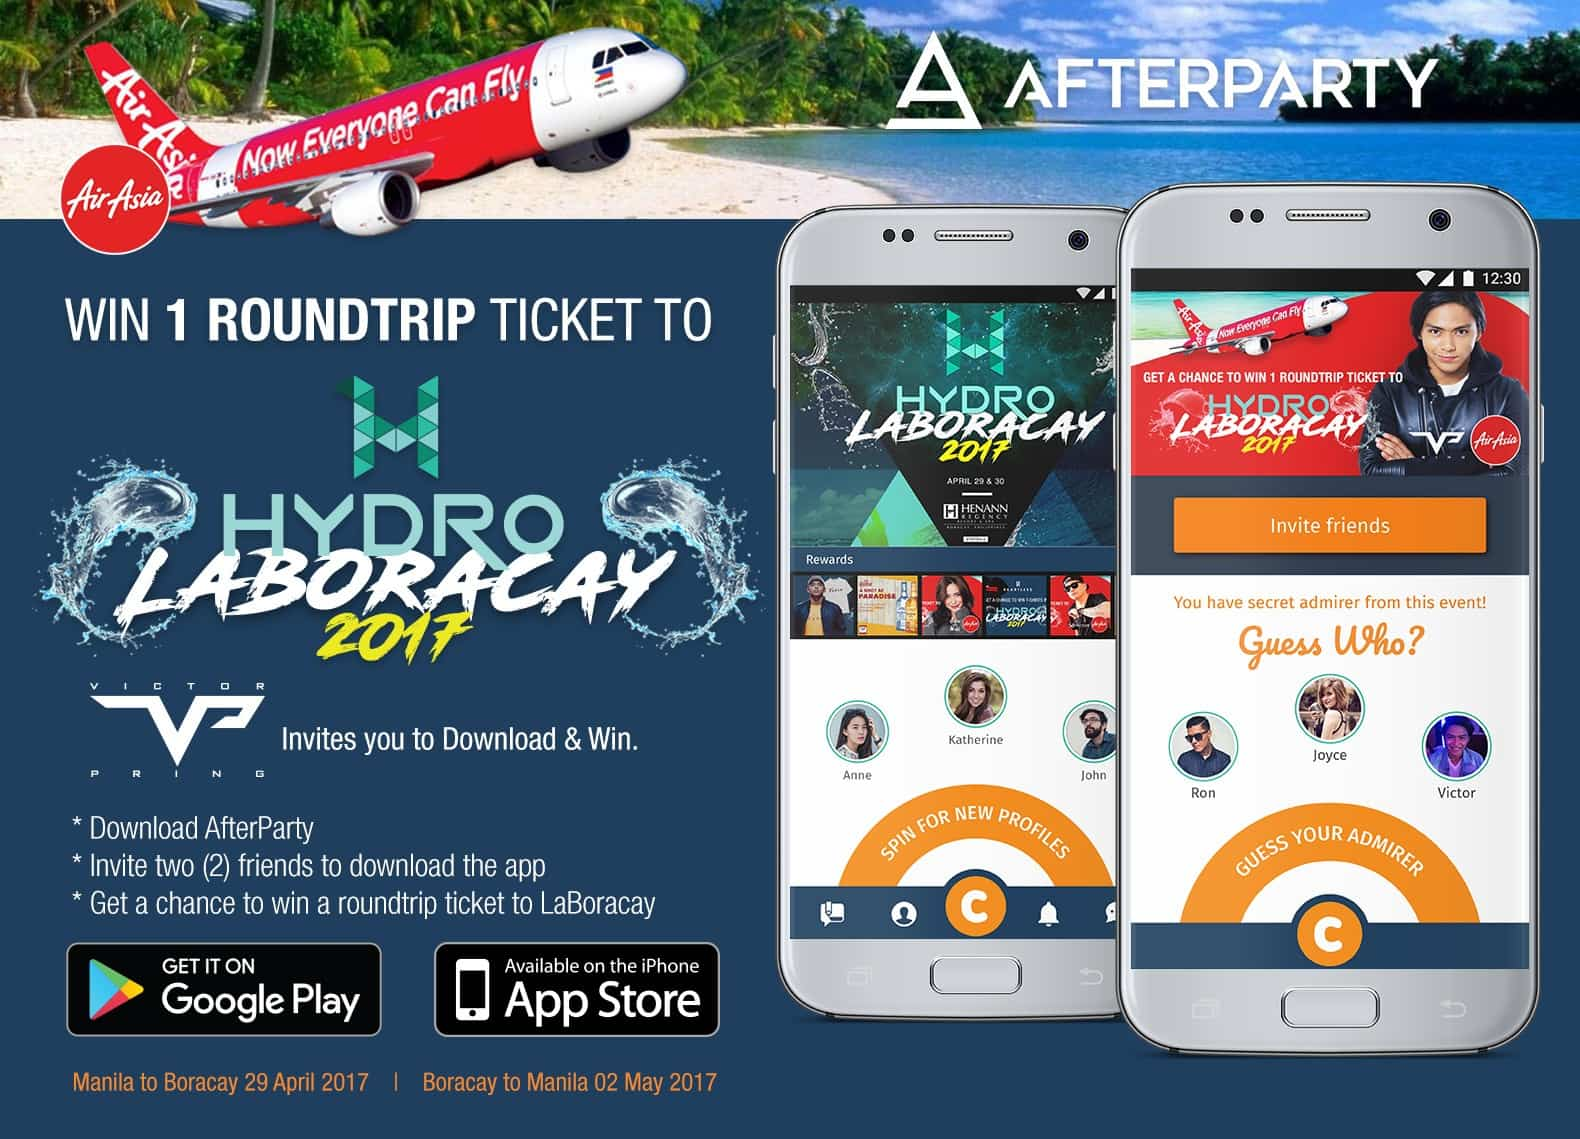 AfterParty AirAsia Victor Pring contest for Hydro Laboracay 2017